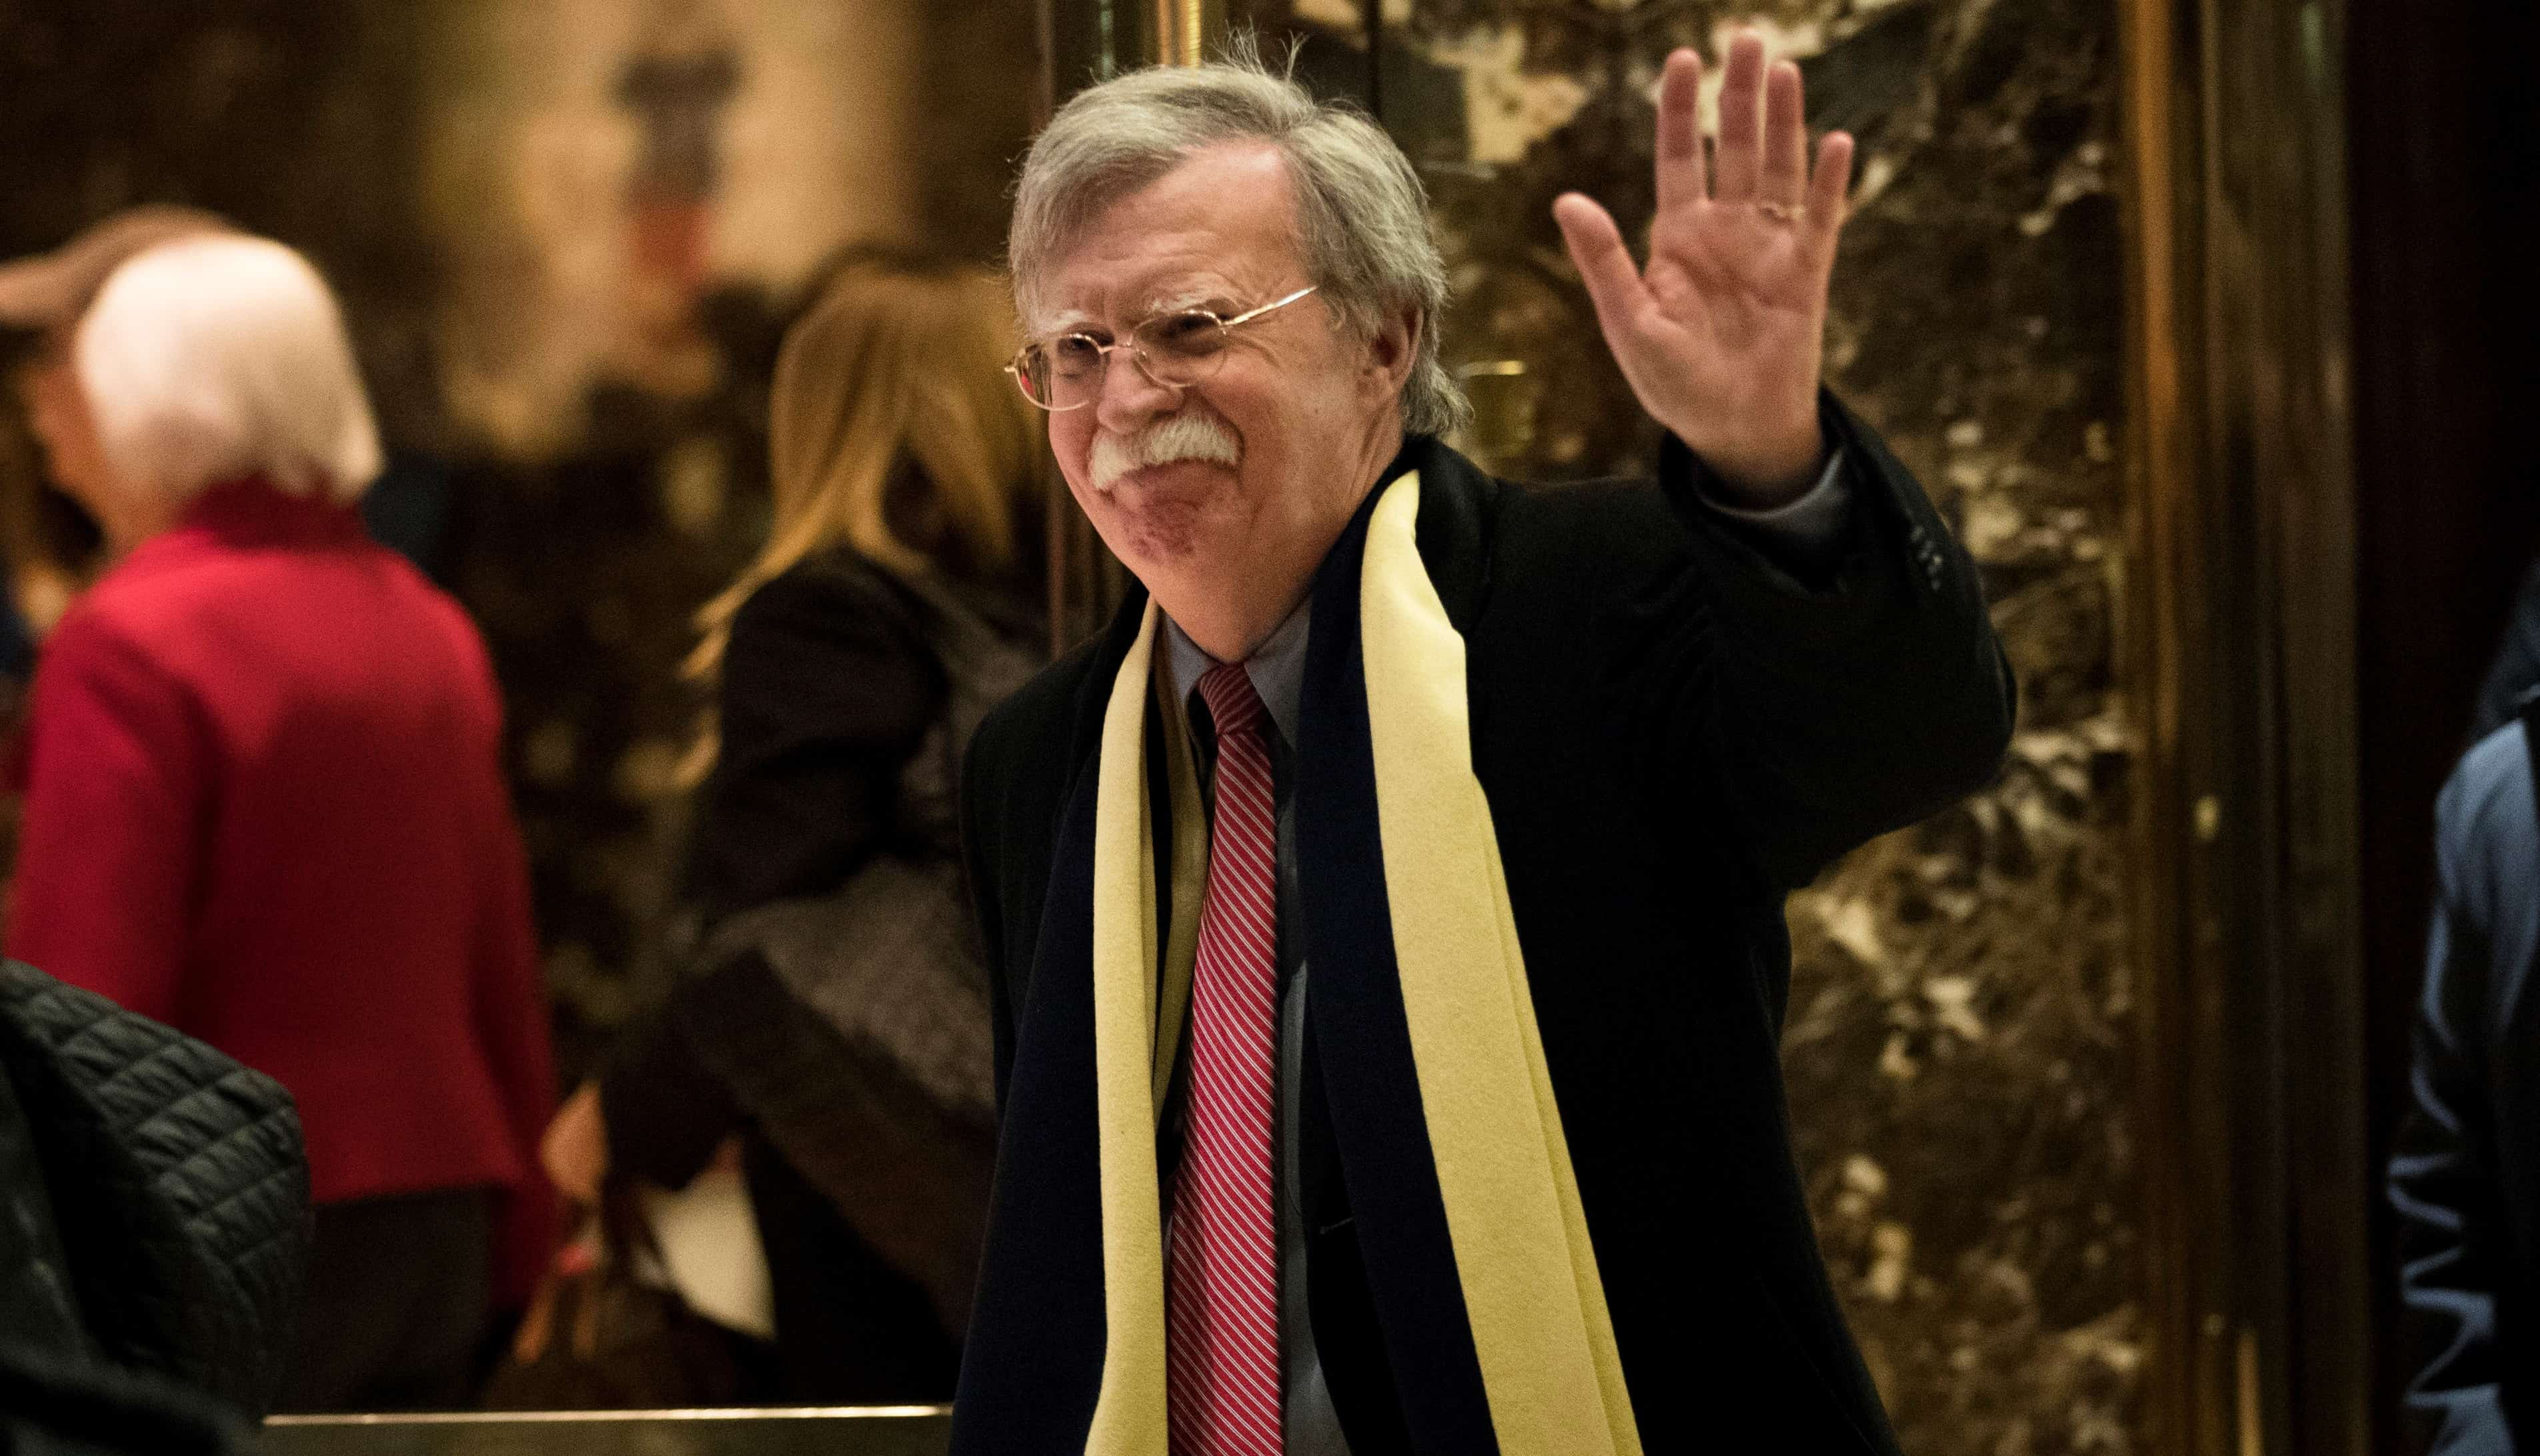 John Bolton at Trump Tower, New York (Photo: Drew Angerer)